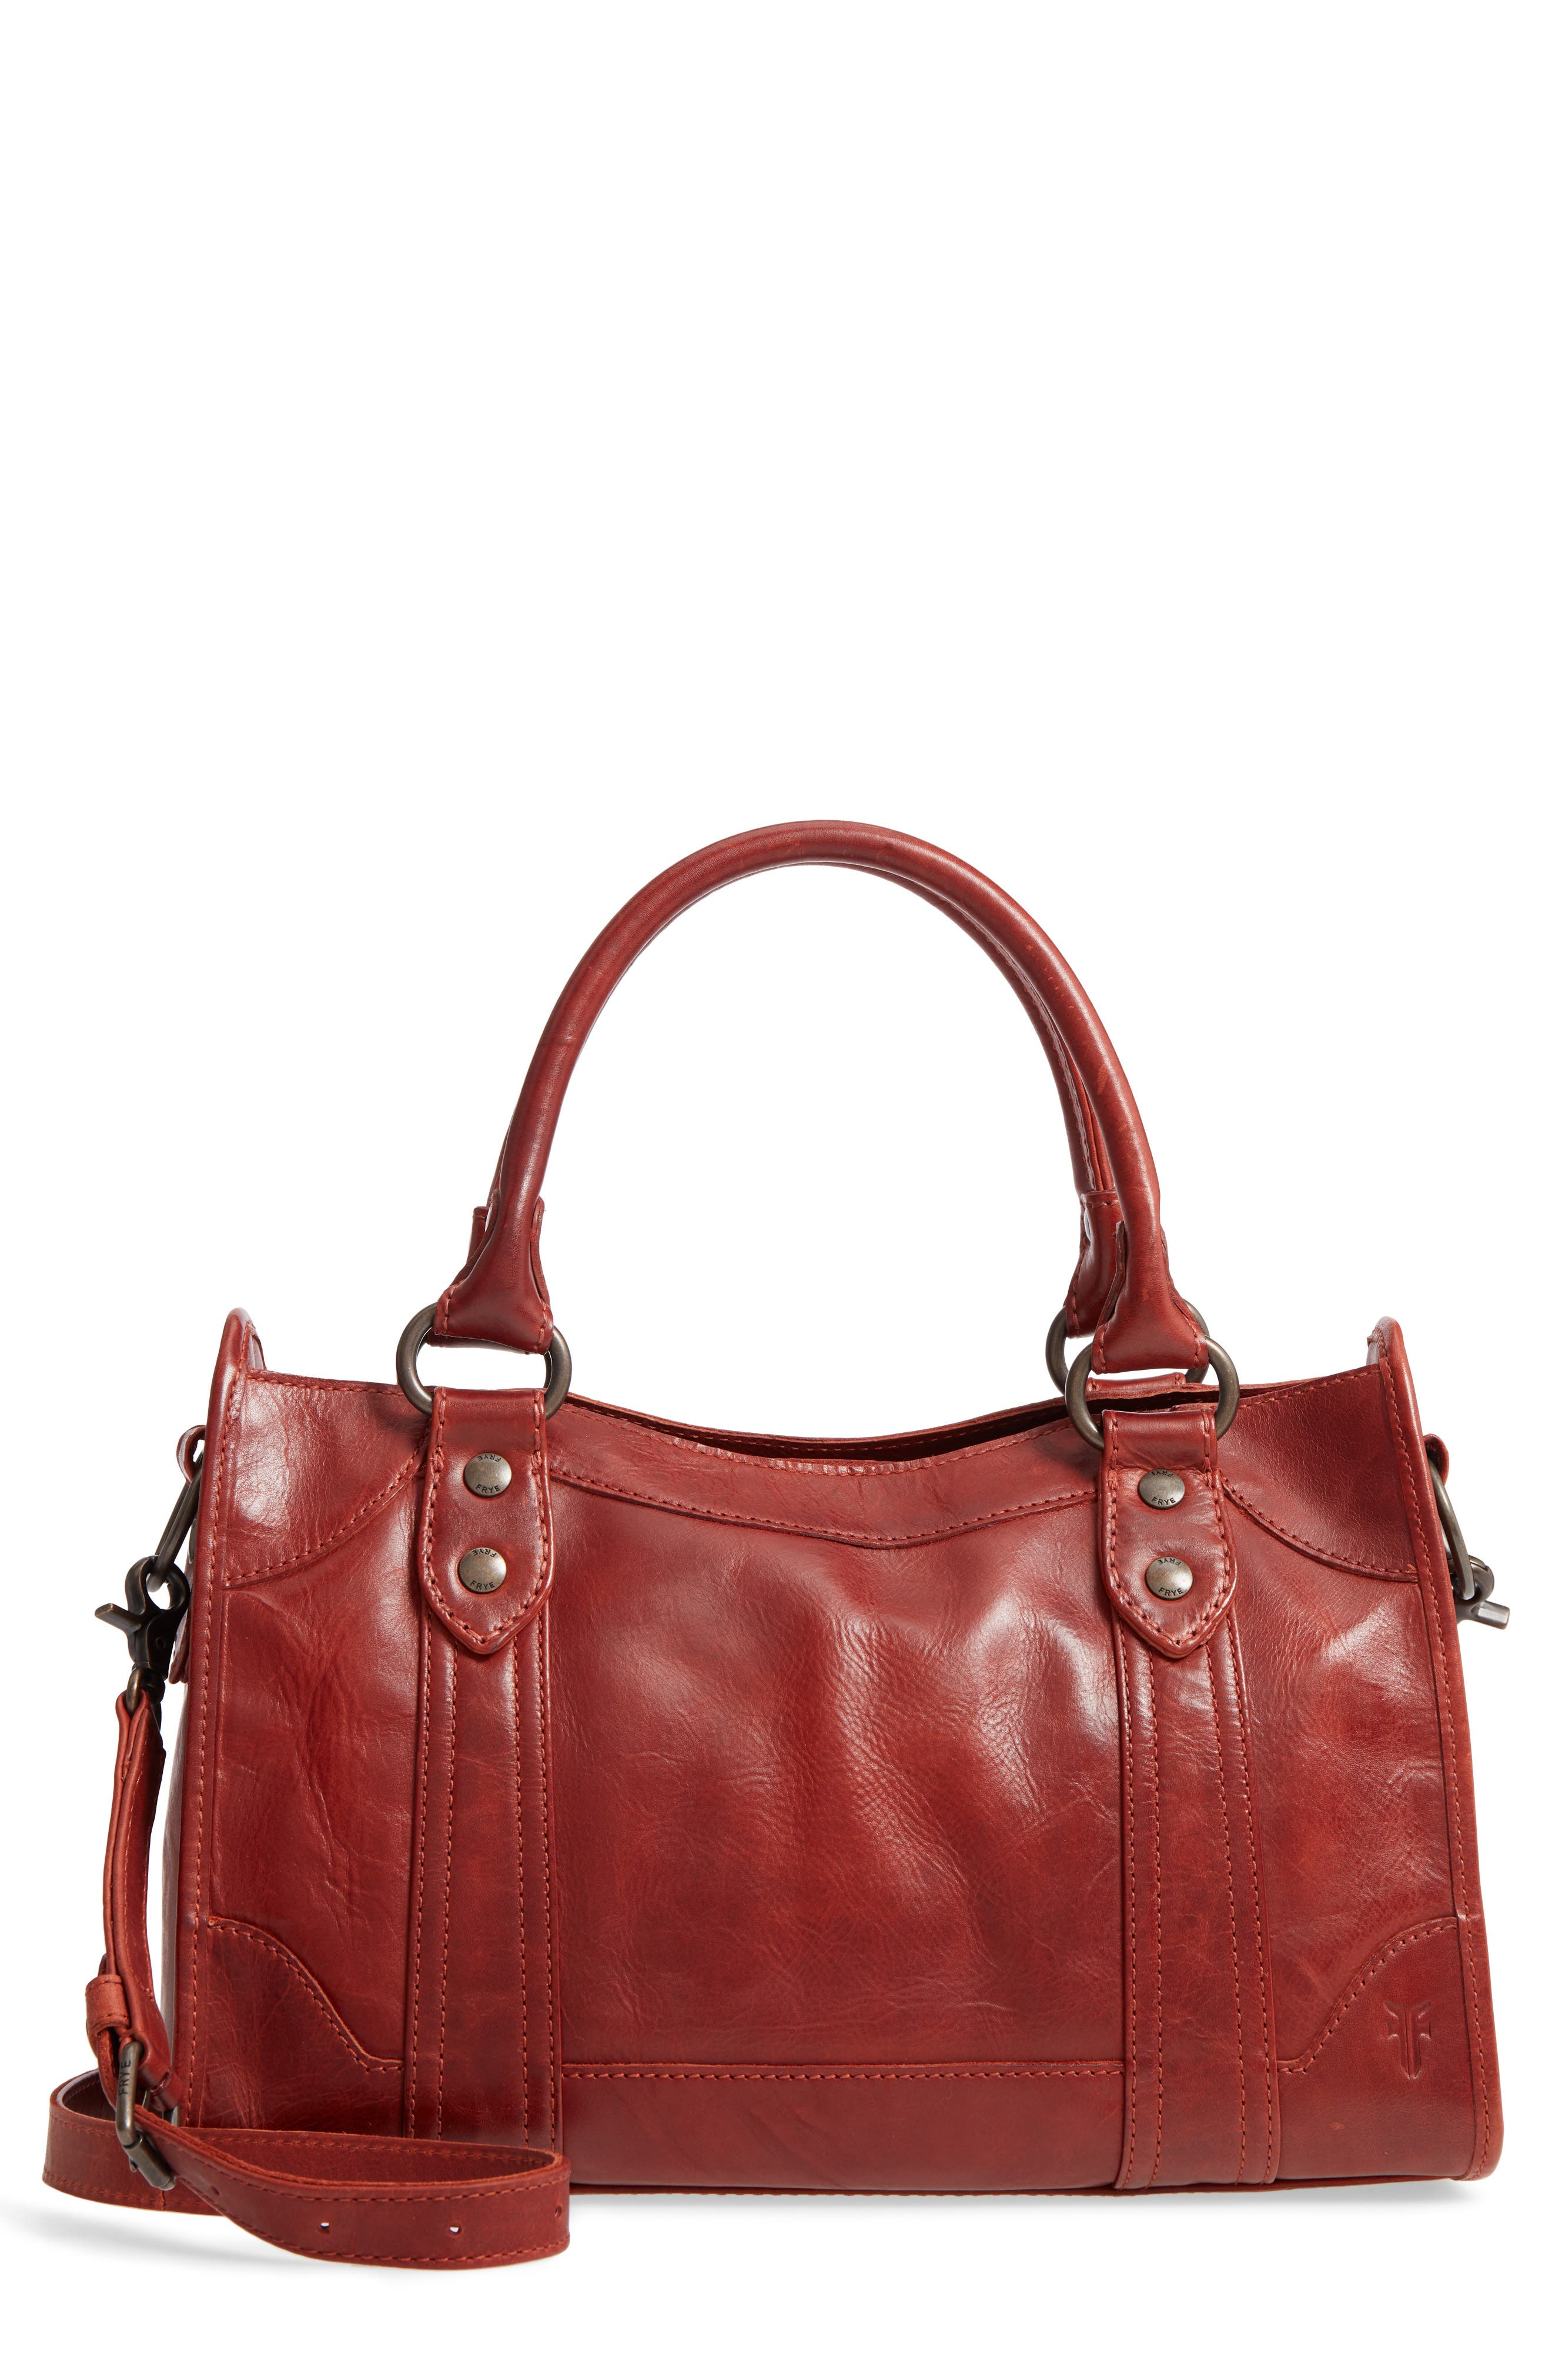 'Melissa' Washed Leather Satchel,                             Main thumbnail 1, color,                             Red Clay